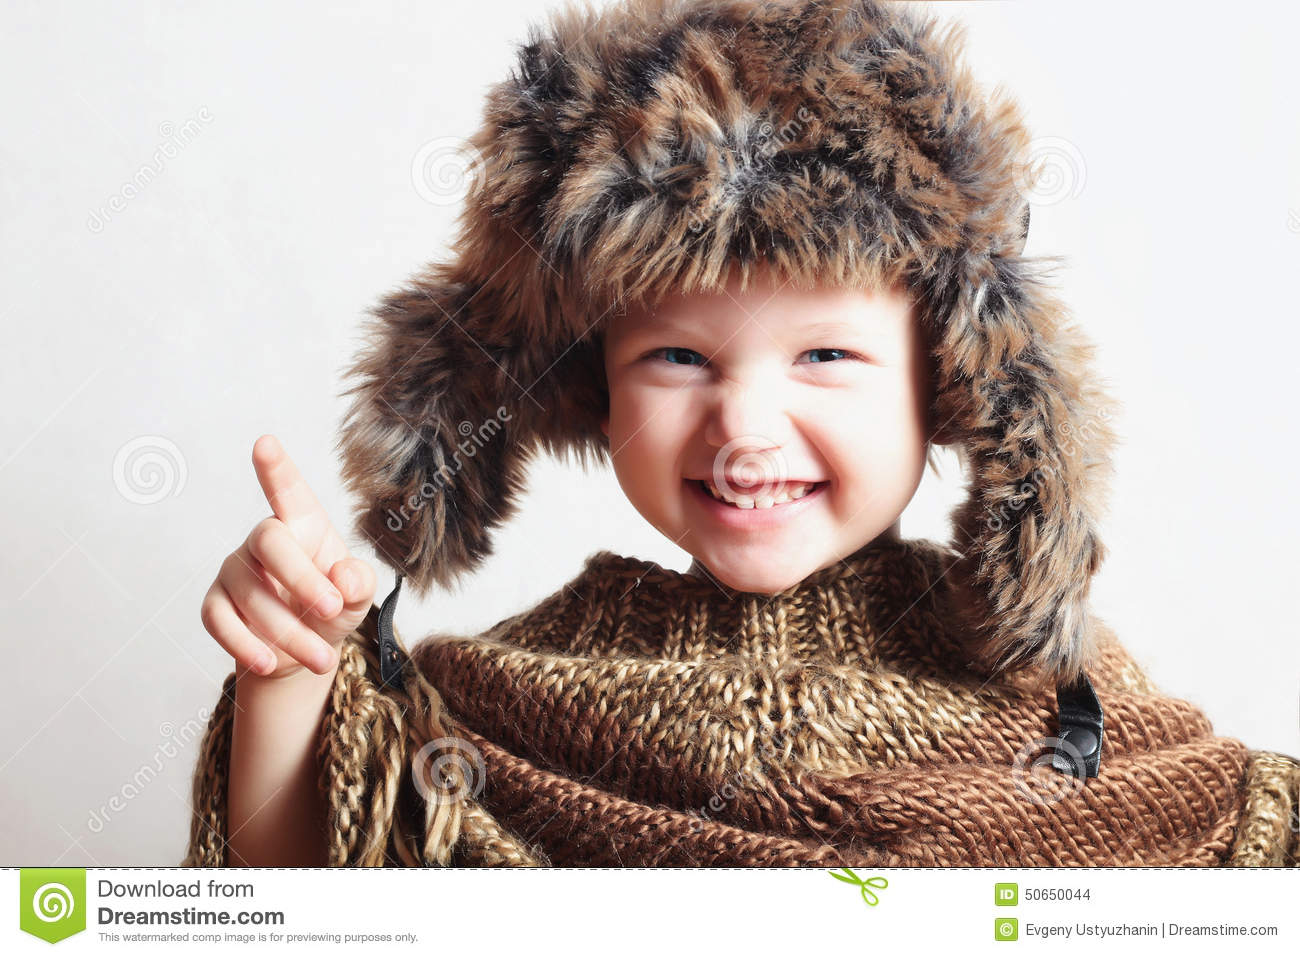 12befa1c4b3 Portrait of smiling child in fur Hat.Kids casual winter style.fashion  little funny boy.children emotion